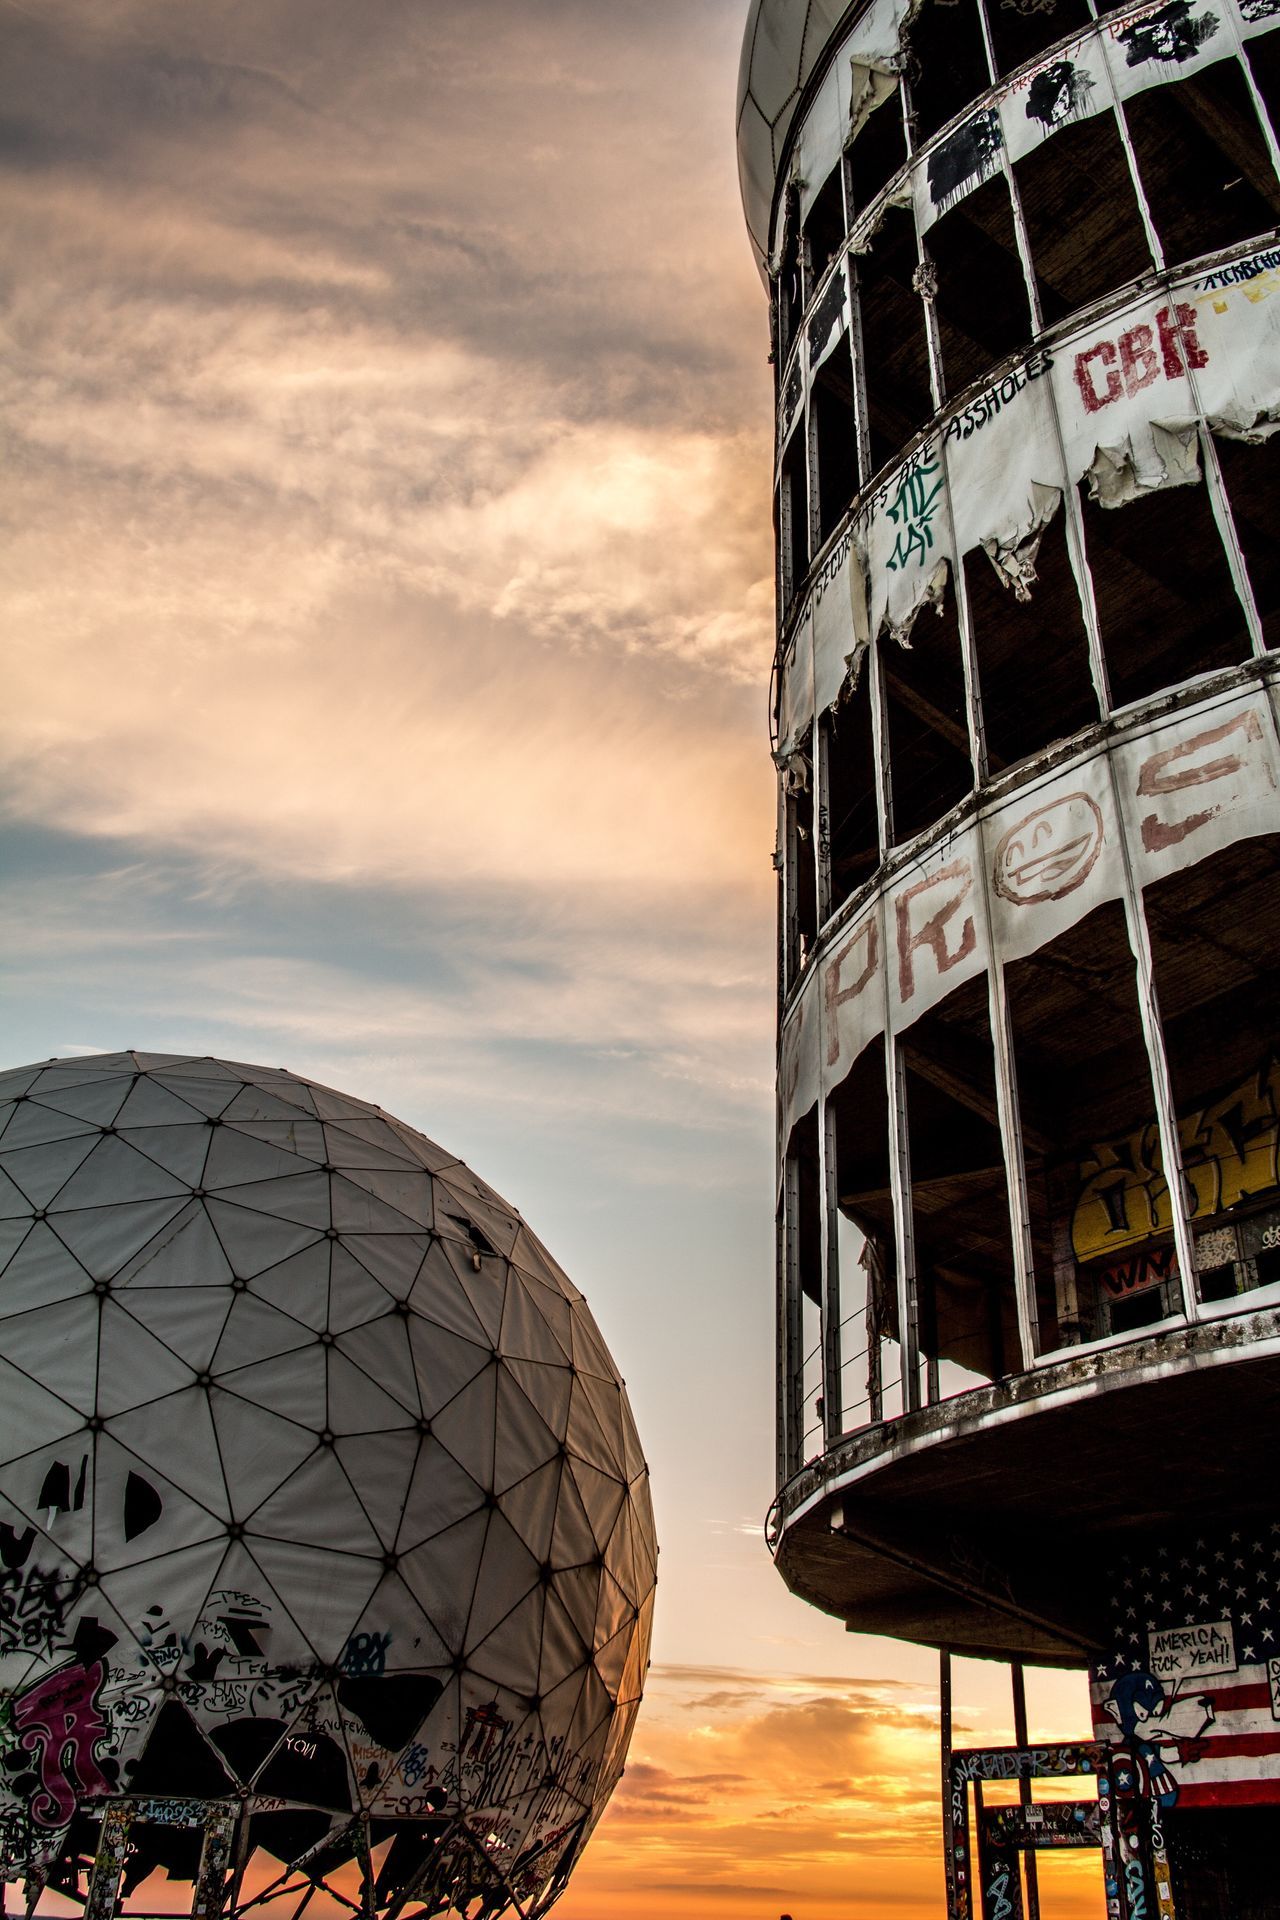 EyeEm EyeEm Best Shots Structure Capture Berlin Teufelsberg Berlin Teufelsbergberlin Taking Photos EyeEm Best Edits Old Ruin NSA Station Berlin Sky Sunset Ruin Ruined Building Graffiti Rotten Abhörstation Teufelsberg Abhörstation Evening Evening Sky The City Light